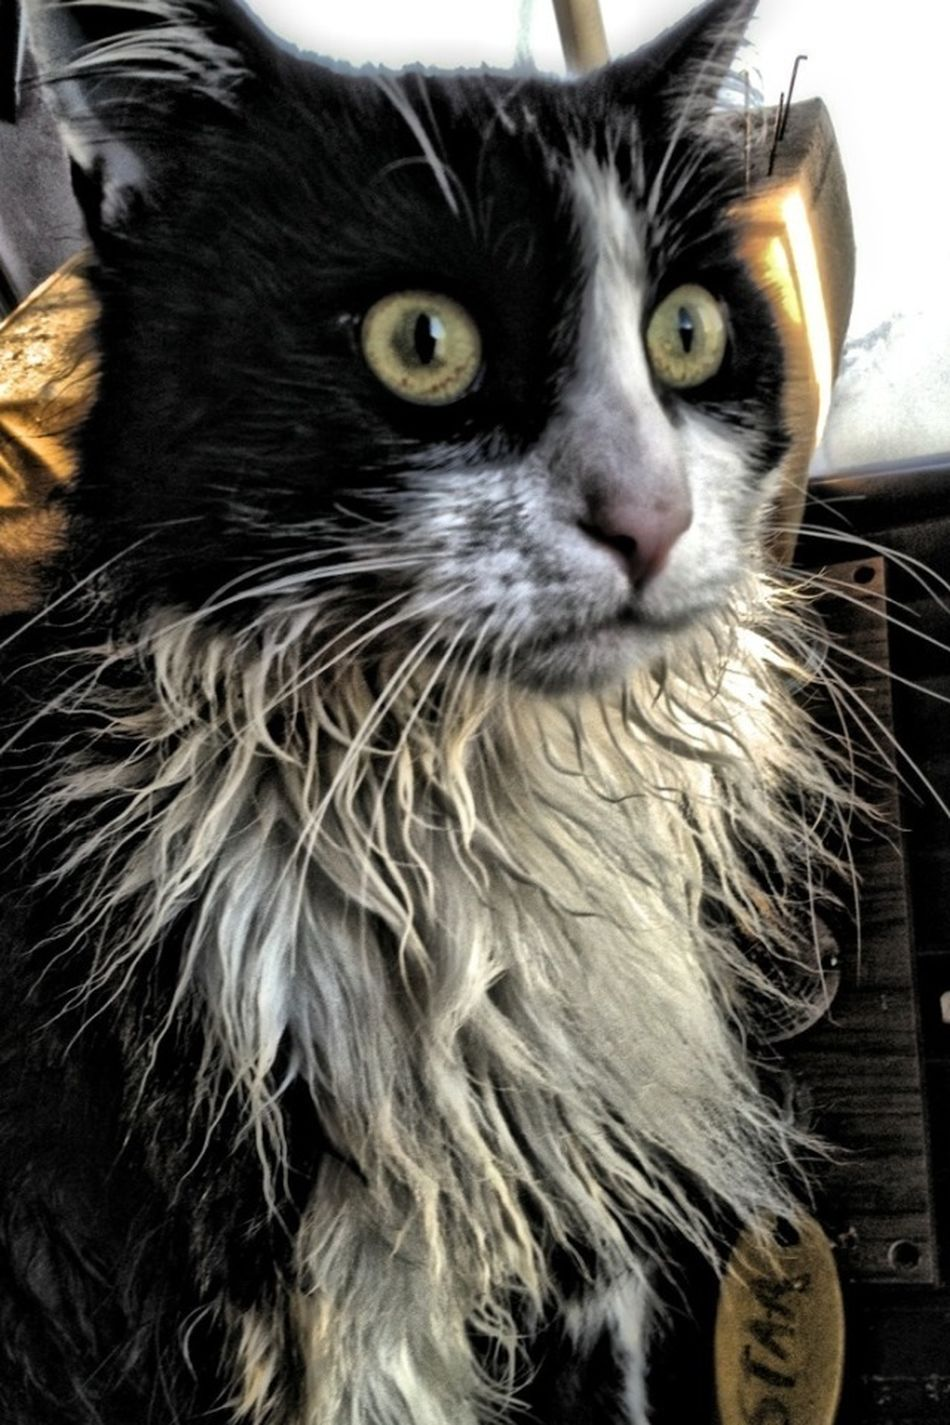 The ship's cat went for an unintentiional swim this morning and was none to happy about it! Portrait